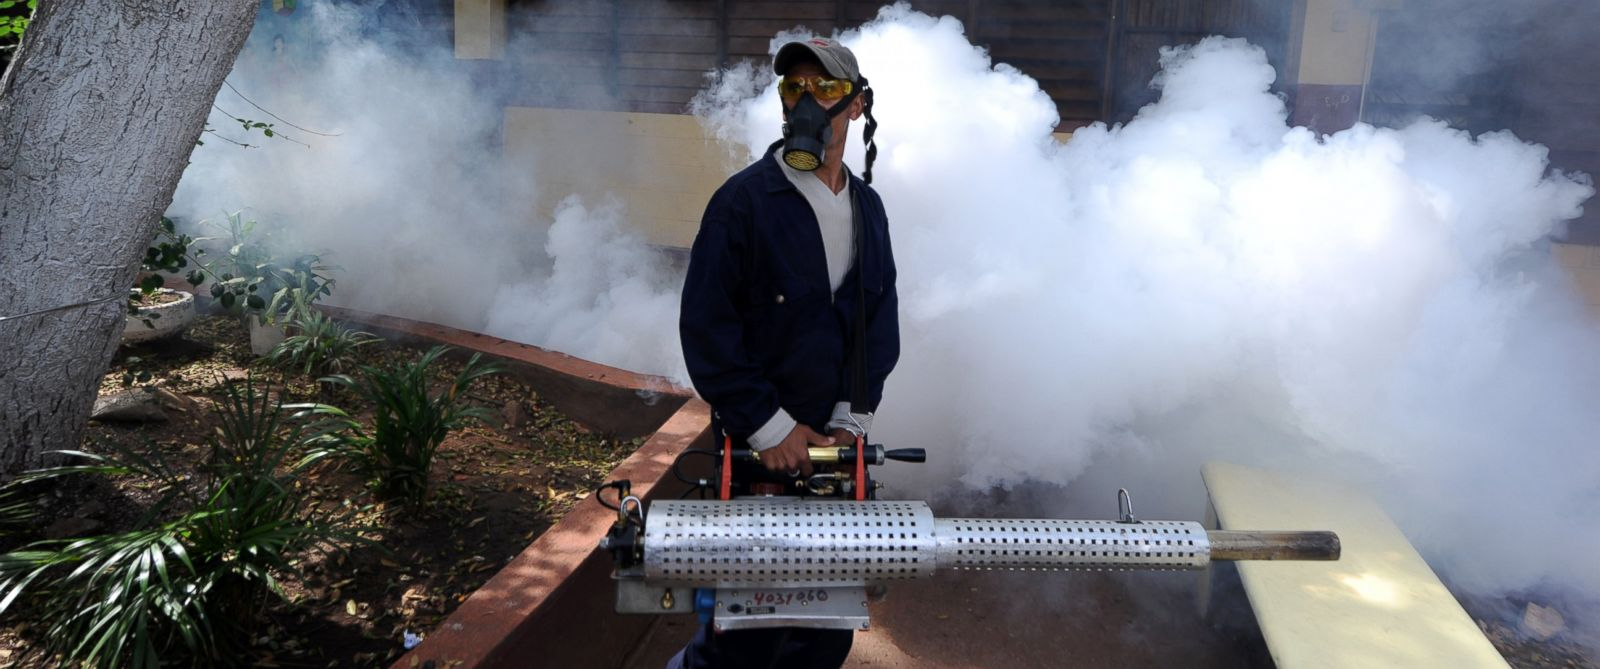 PHOTO: Health ministry personnel fumigate against the Aedes aegypti mosquito in Tegucigalpa, Honduras, Feb. 1, 2016.